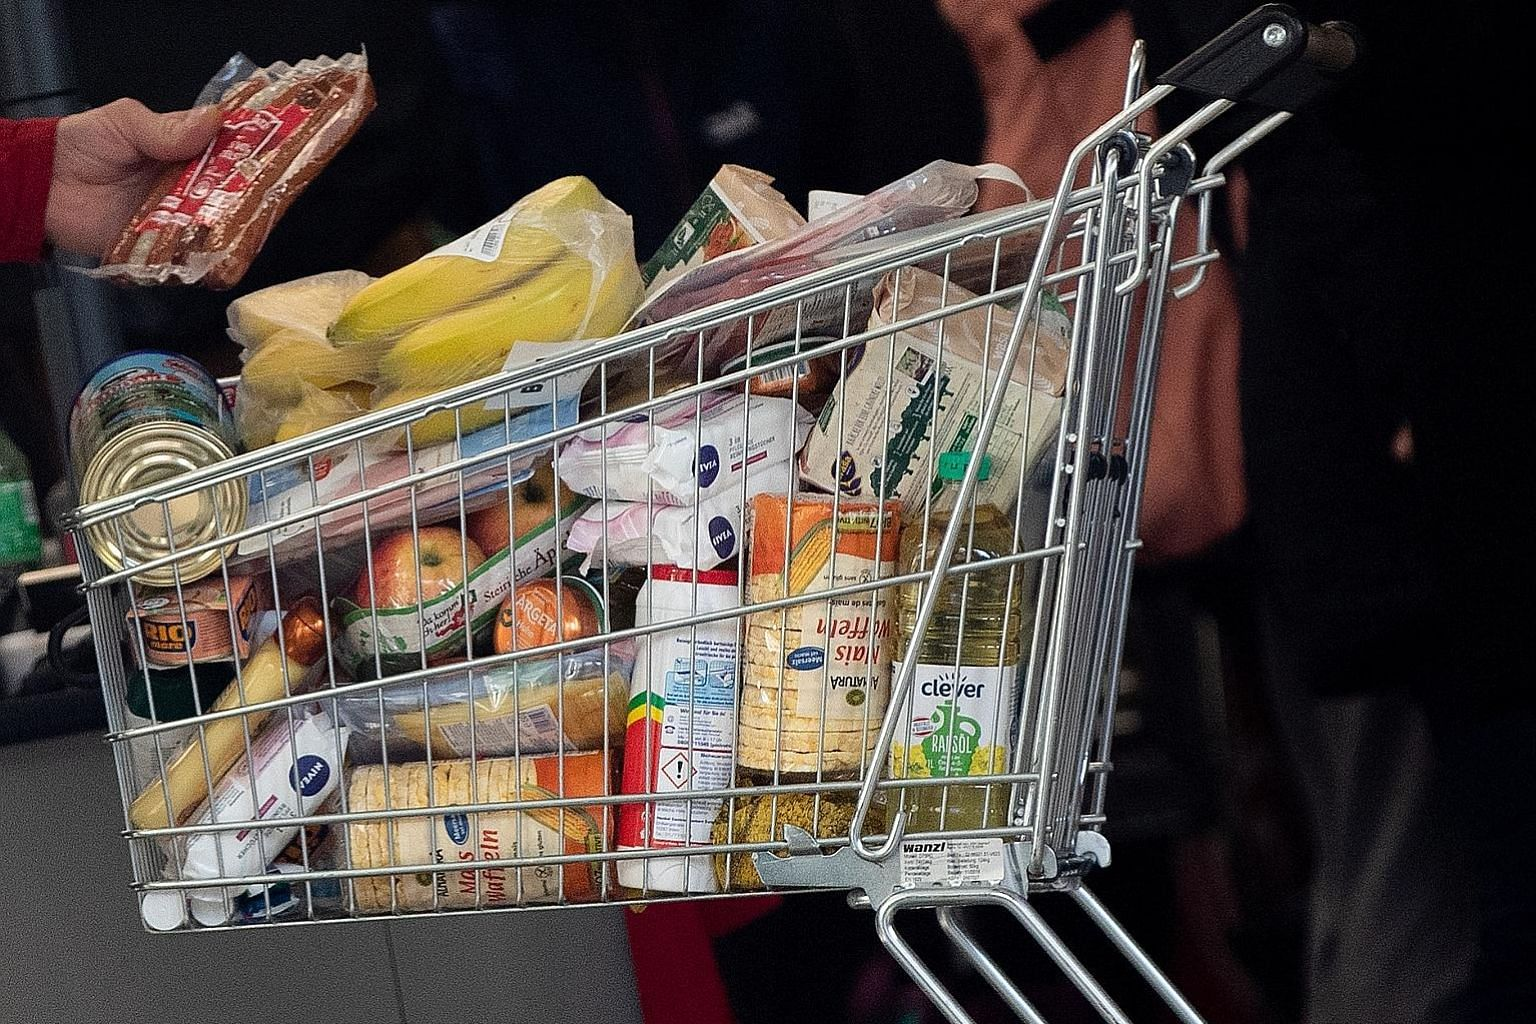 There is no need to buy too much food because delivery services or friends and relatives can bring food items to your doorstep.